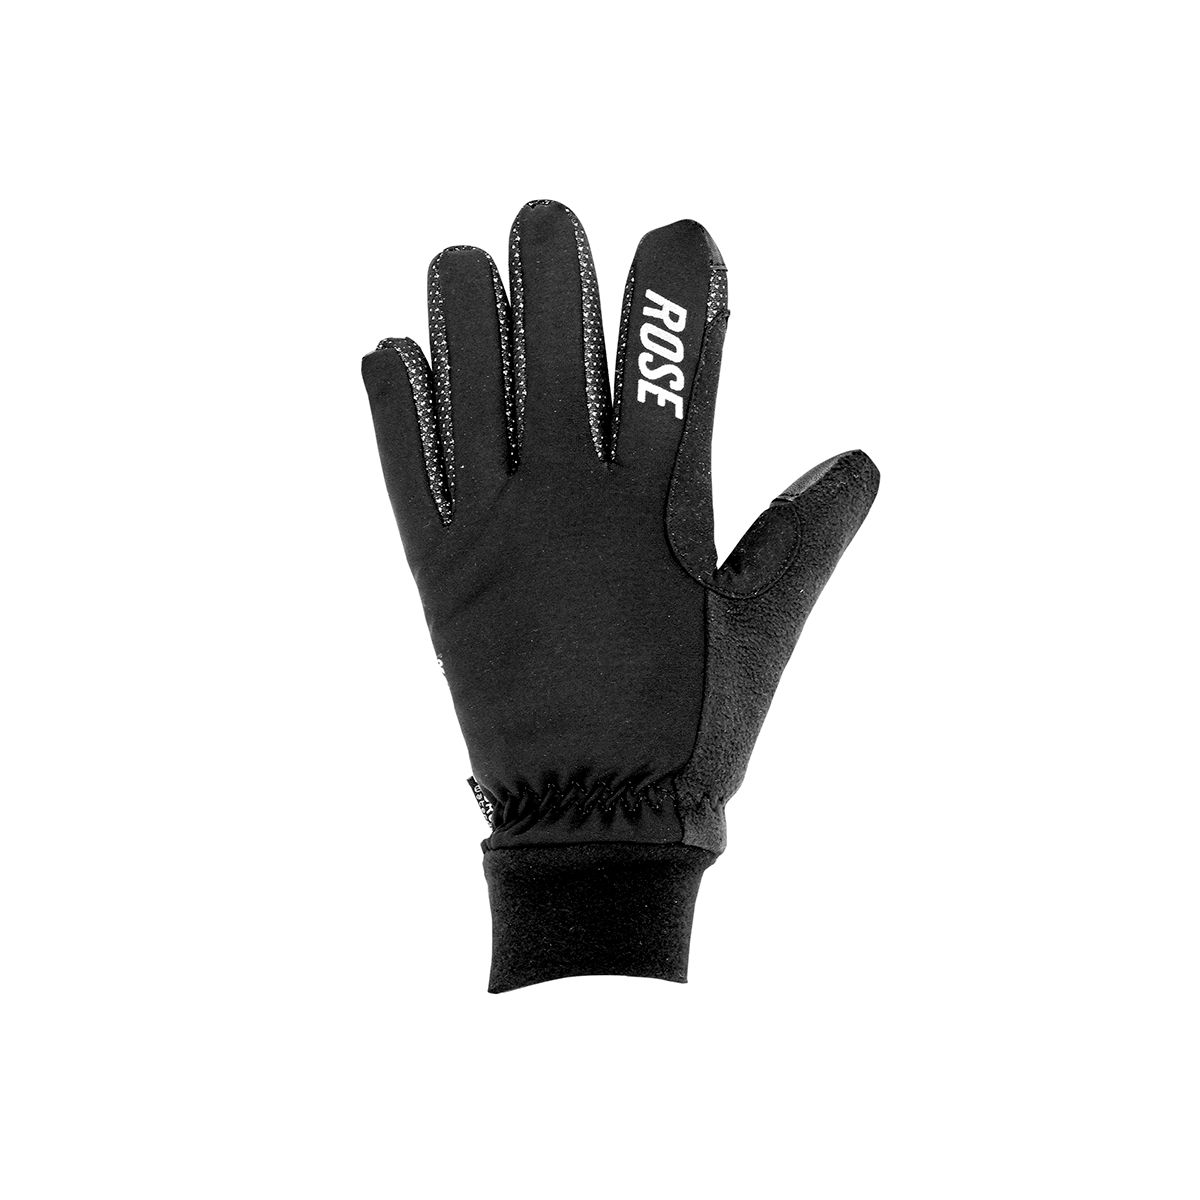 ROAD EUROTEX KID II winter gloves